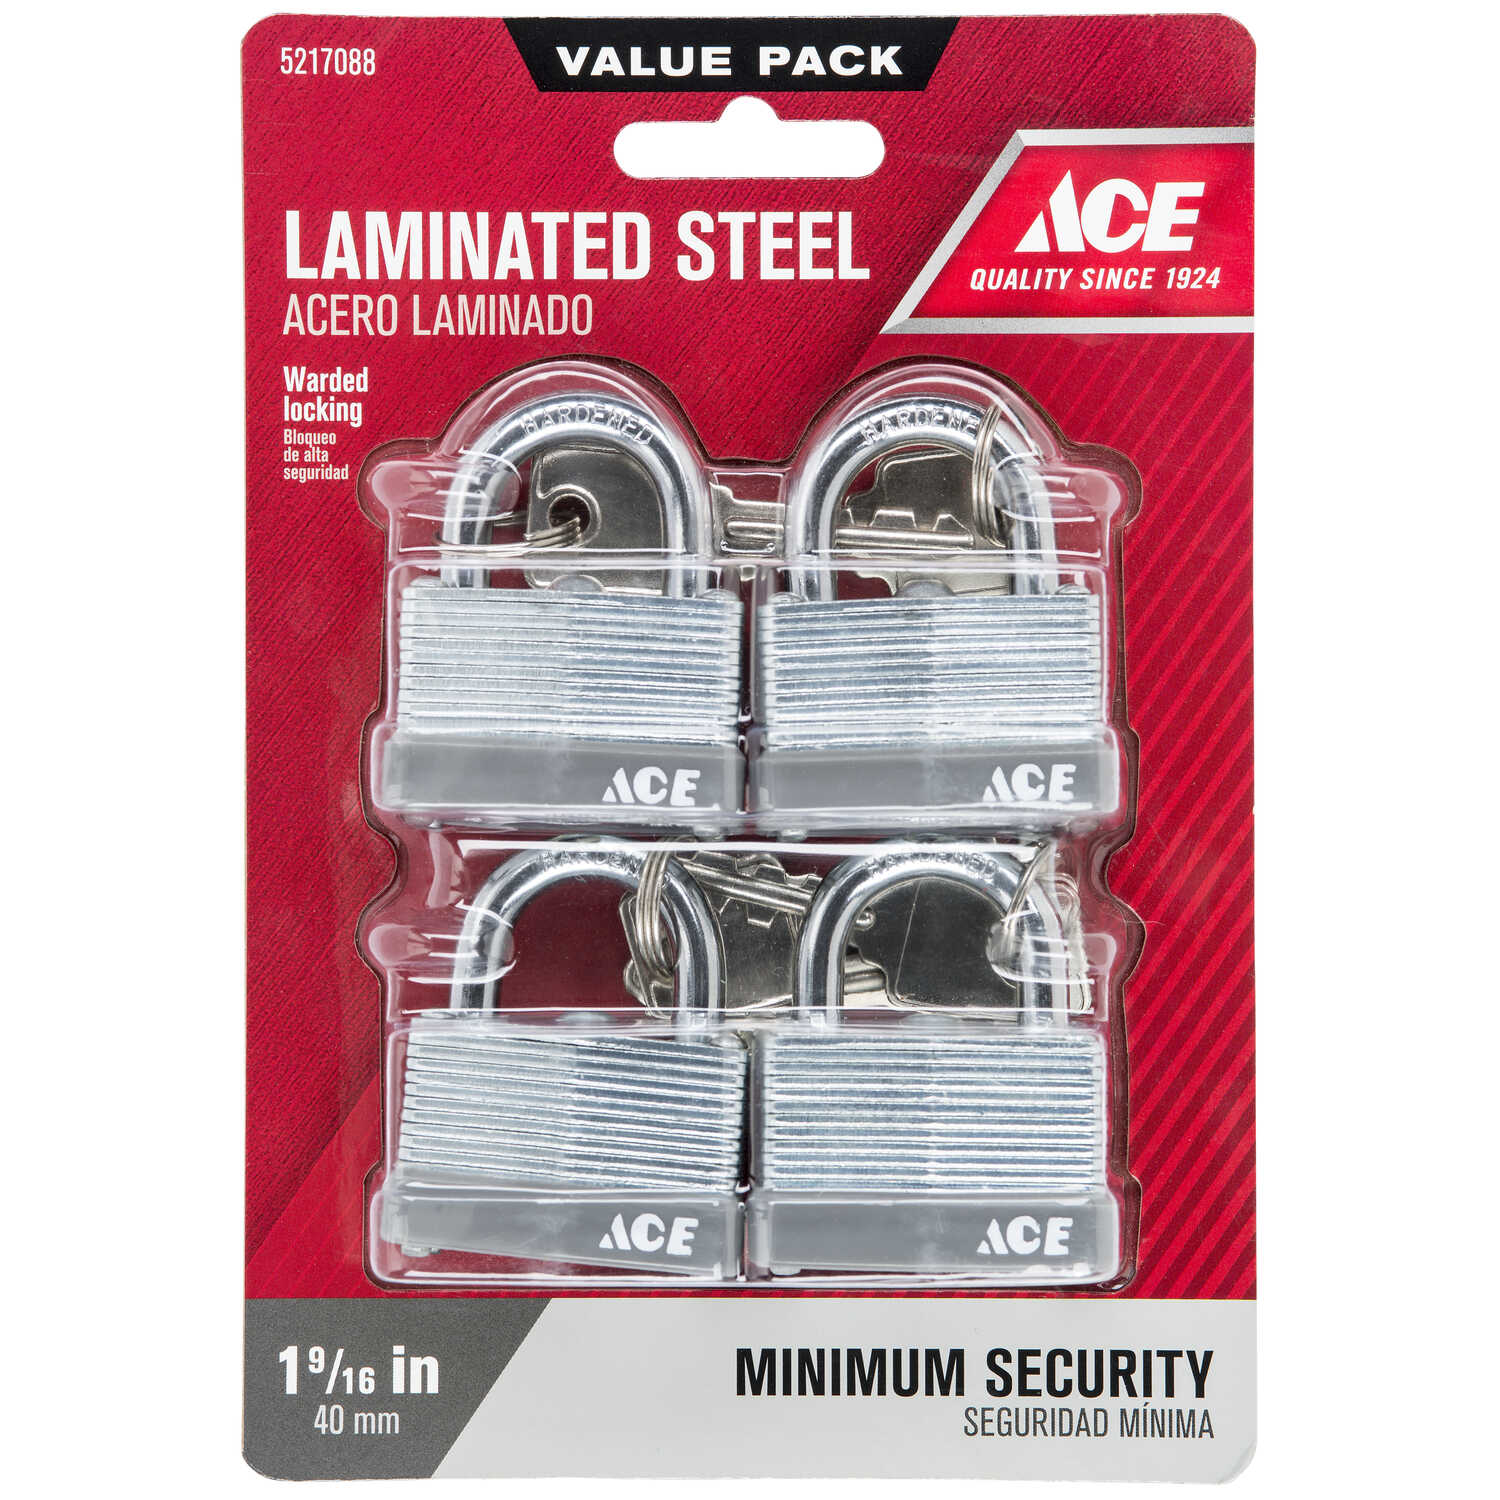 Ace  1 in. H x 7/8 in. L x 1-1/2 in. W Laminated Steel  Warded Locking  Padlock  4 pk Keyed Alike